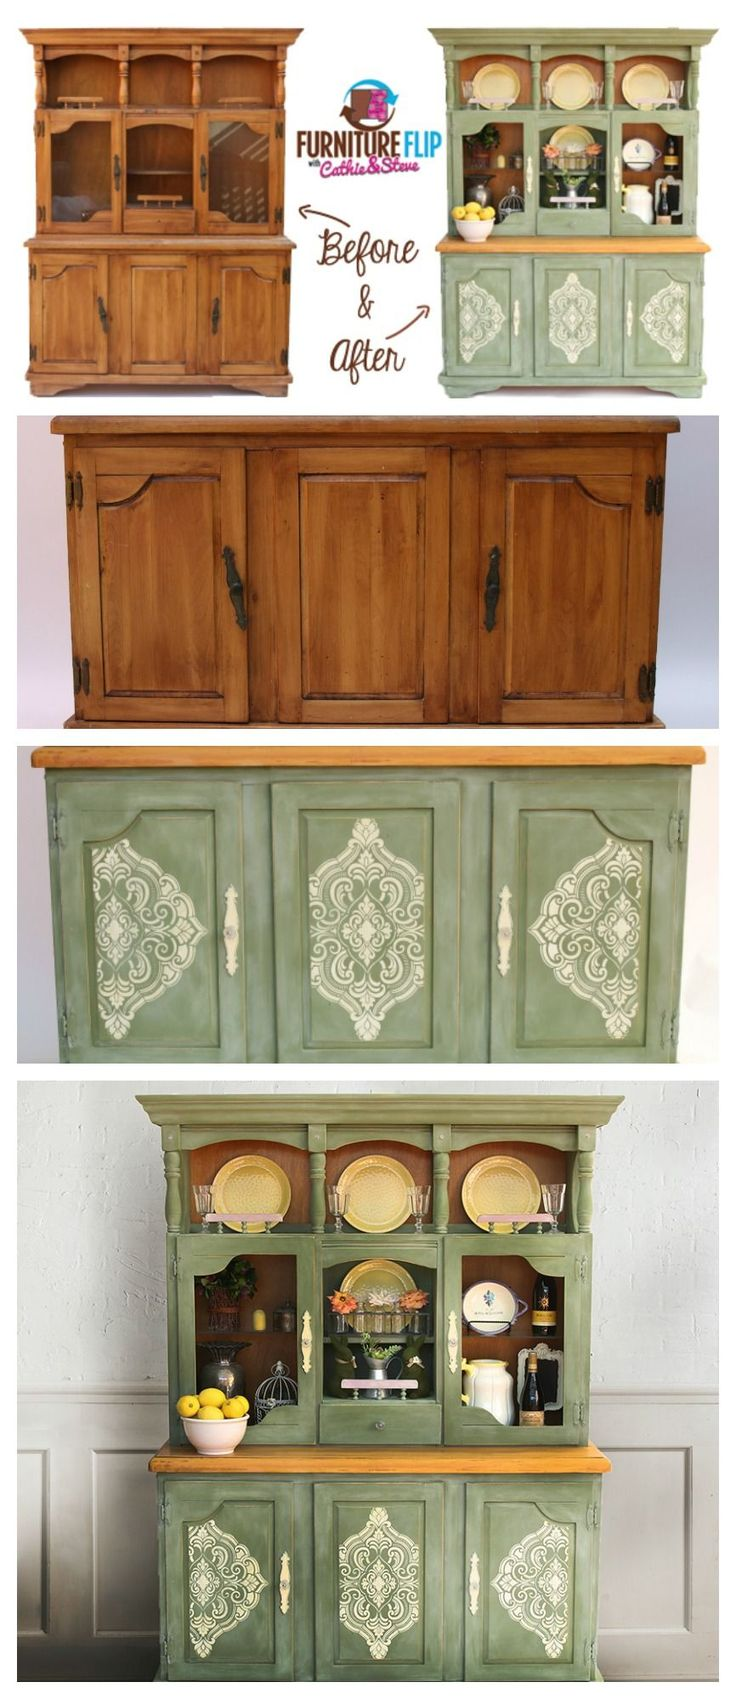 Check out this AMAZING Furniture Flip by Cathie and Steve! Save hundreds by using Chalk Paint and Stencils to revamp old furniture!